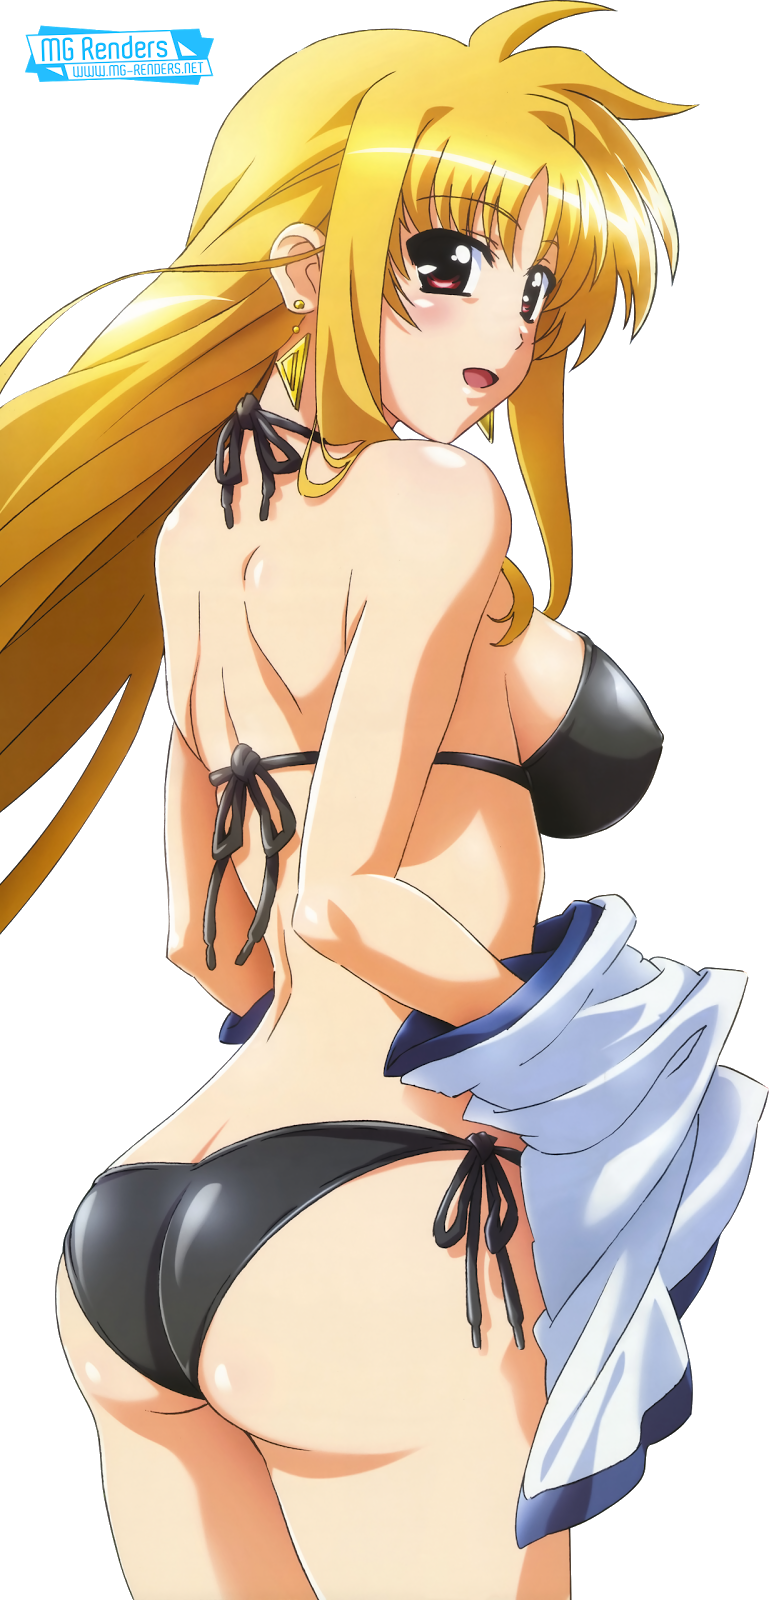 Tags: Anime, Render,  Fate Testarossa,  Mahou Shoujo Lyrical Nanoha,  PNG, Image, Picture